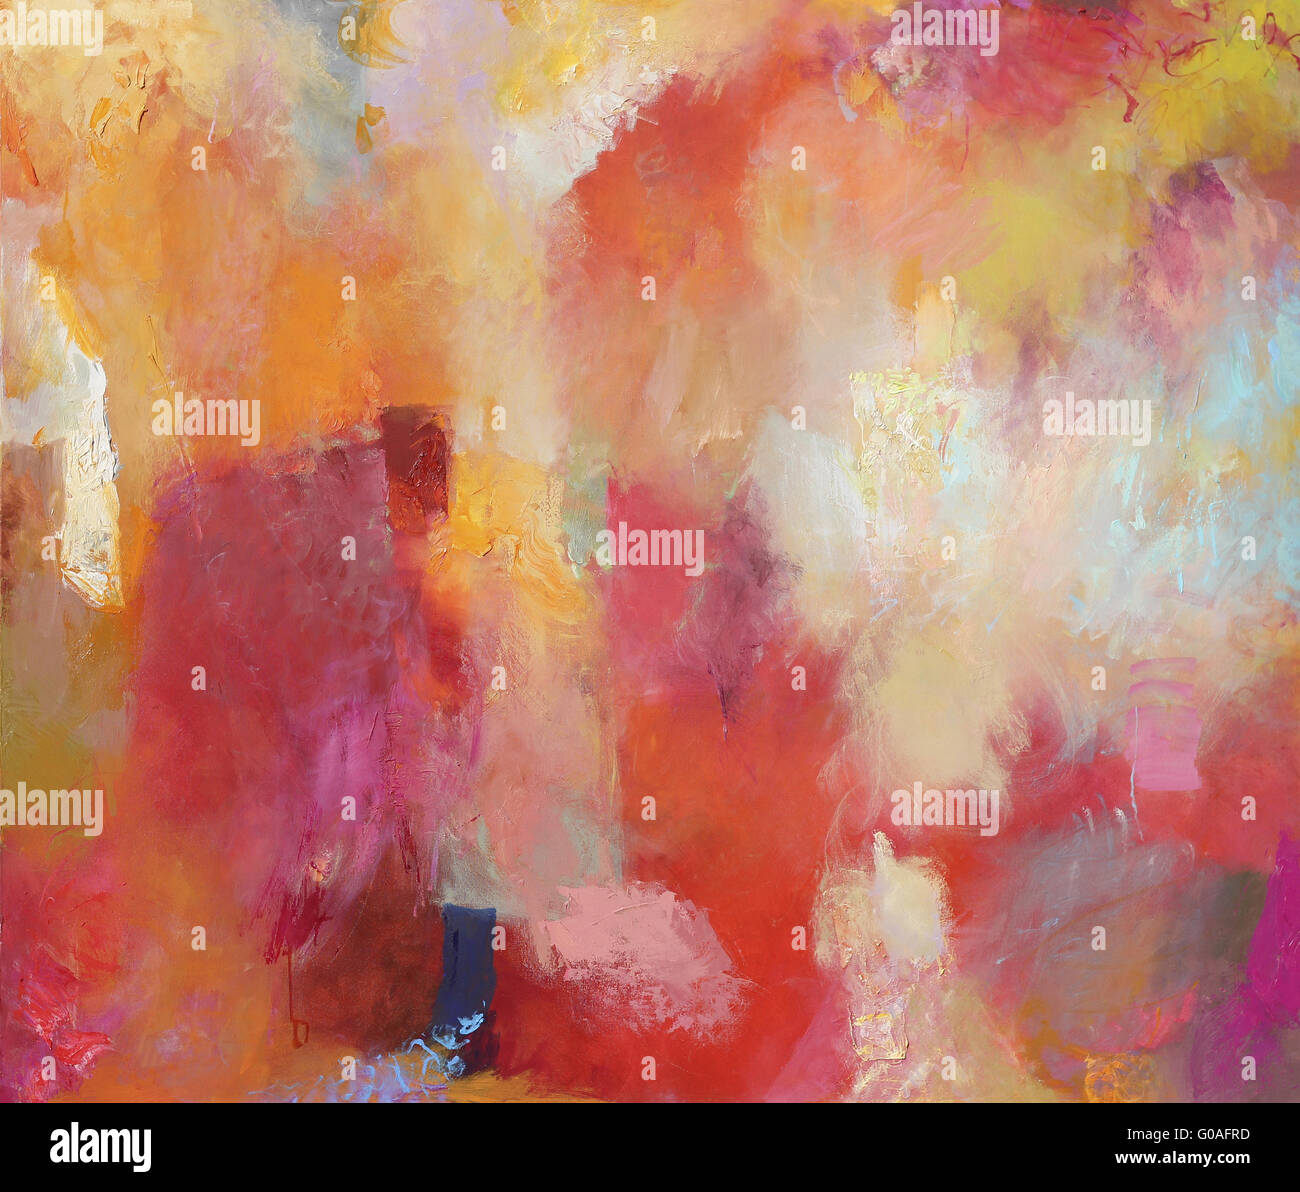 abstract painting on canvas - Stock Image